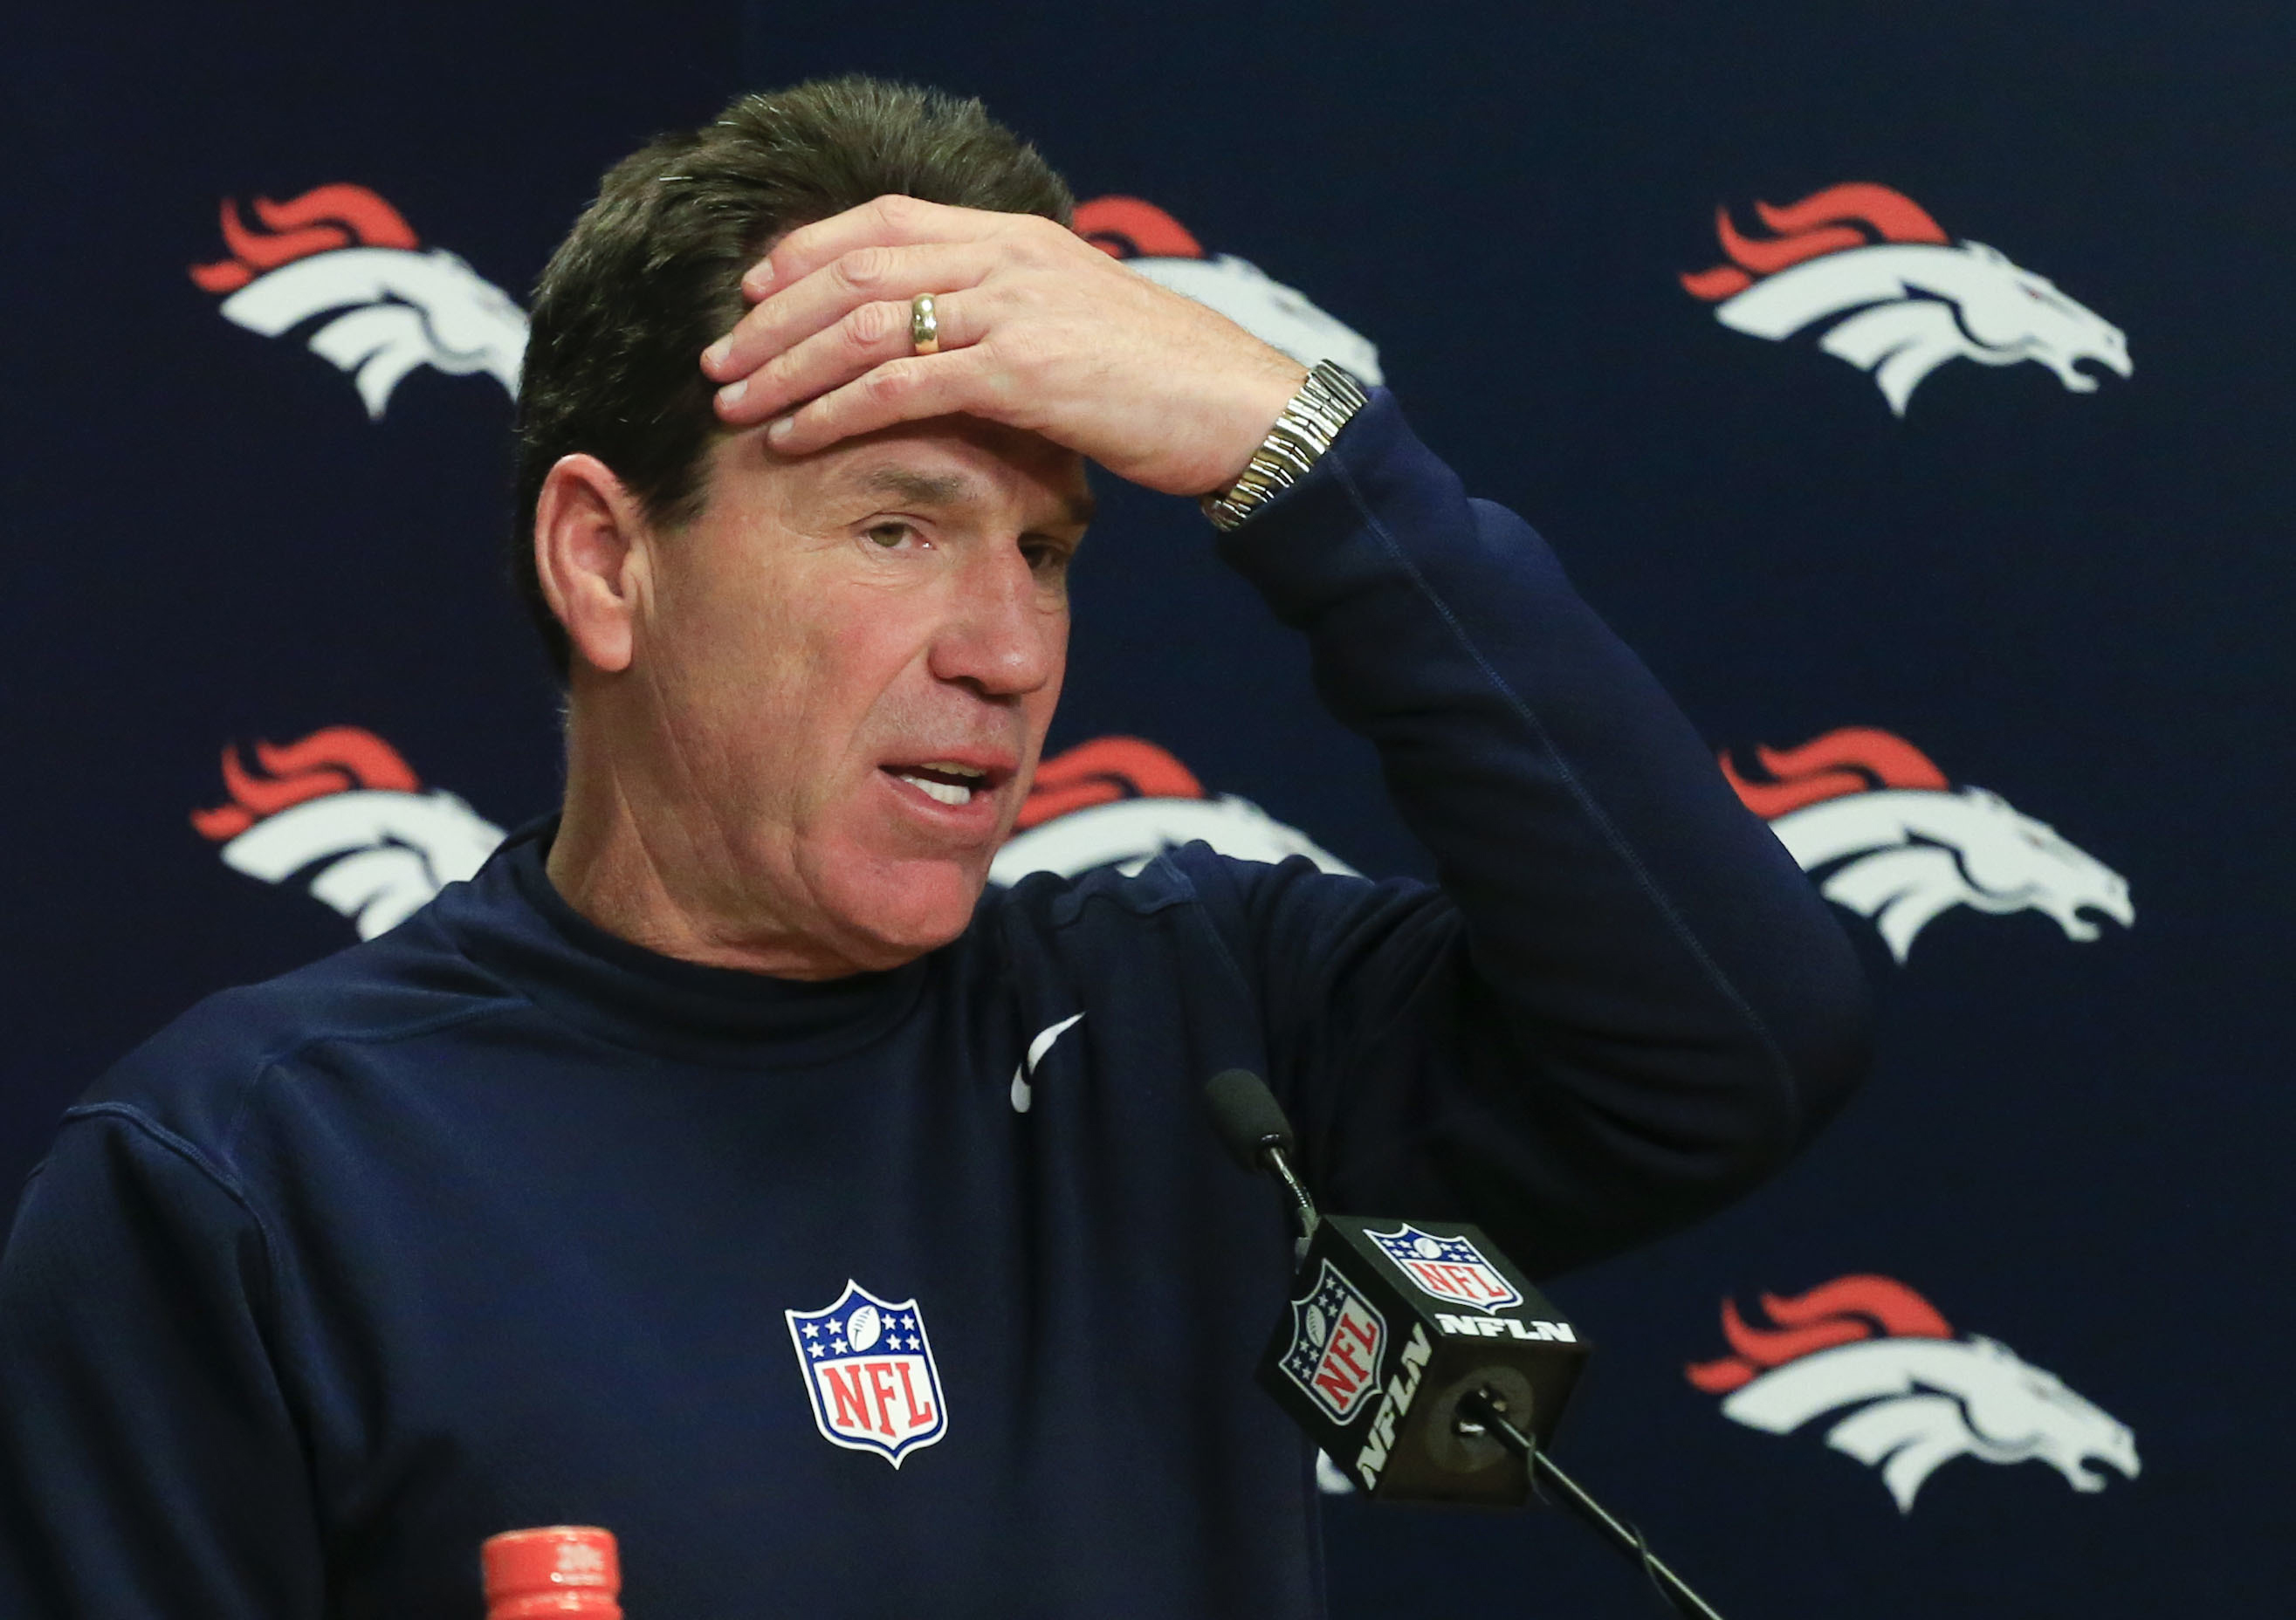 FILE - In a Sunday, Dec. 18, 2016 file photo, Denver Broncos head coach Gary Kubiak talks during a news conference after their loss against the New England Patriots in an NFL football game, in Denver. Denver's five-year playoff run that featured two Super